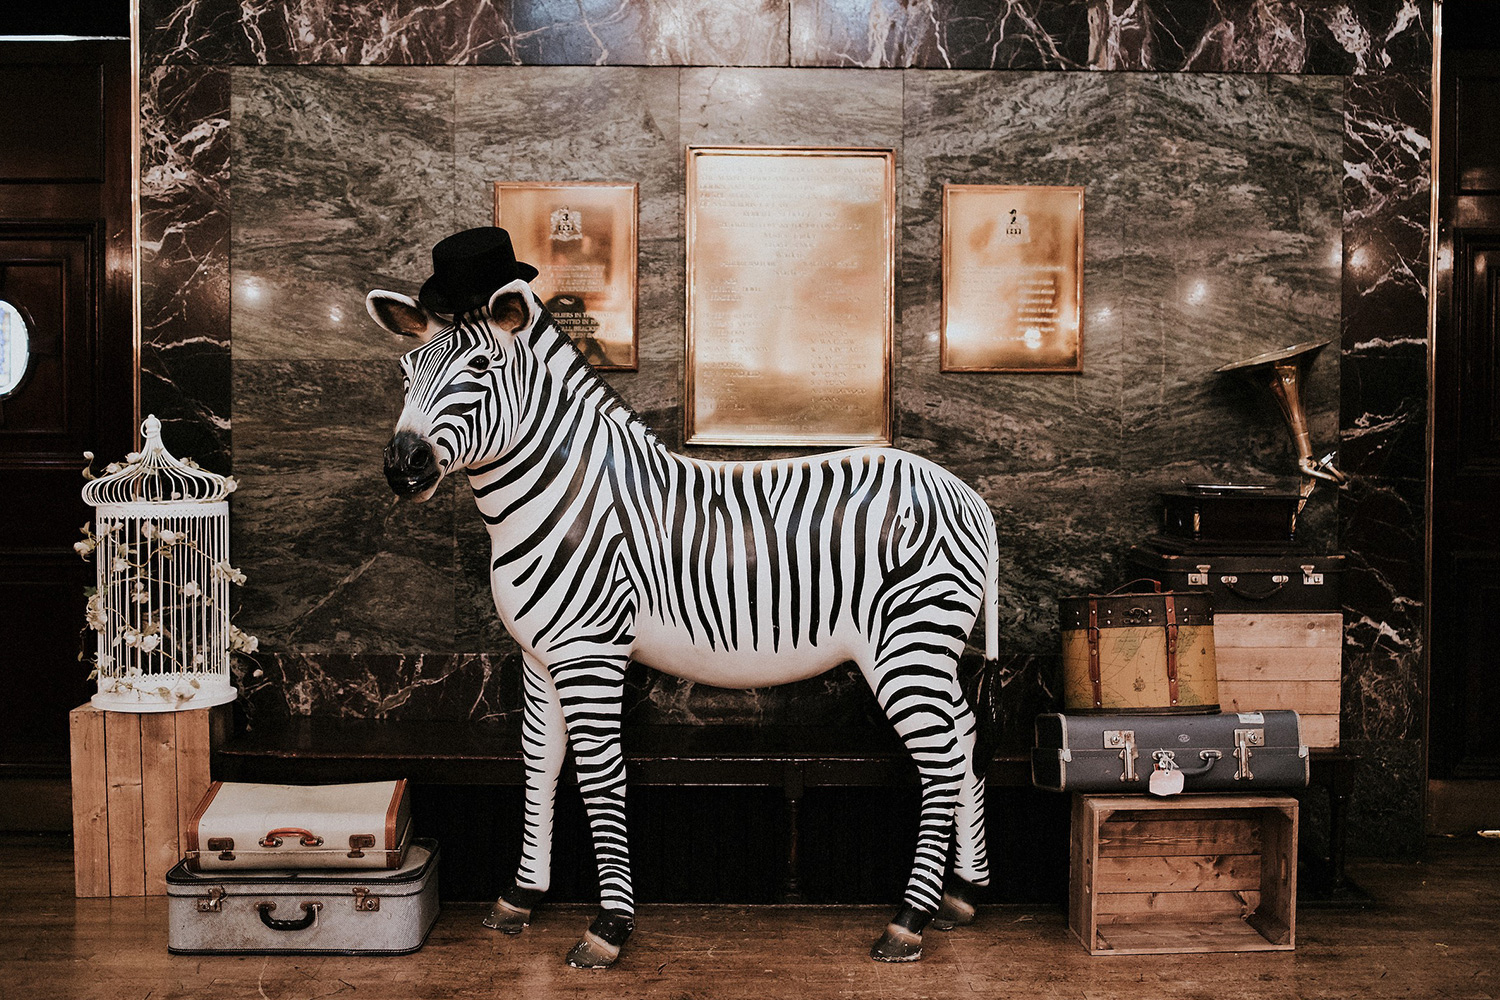 More Wedding props and theming with zebra prop